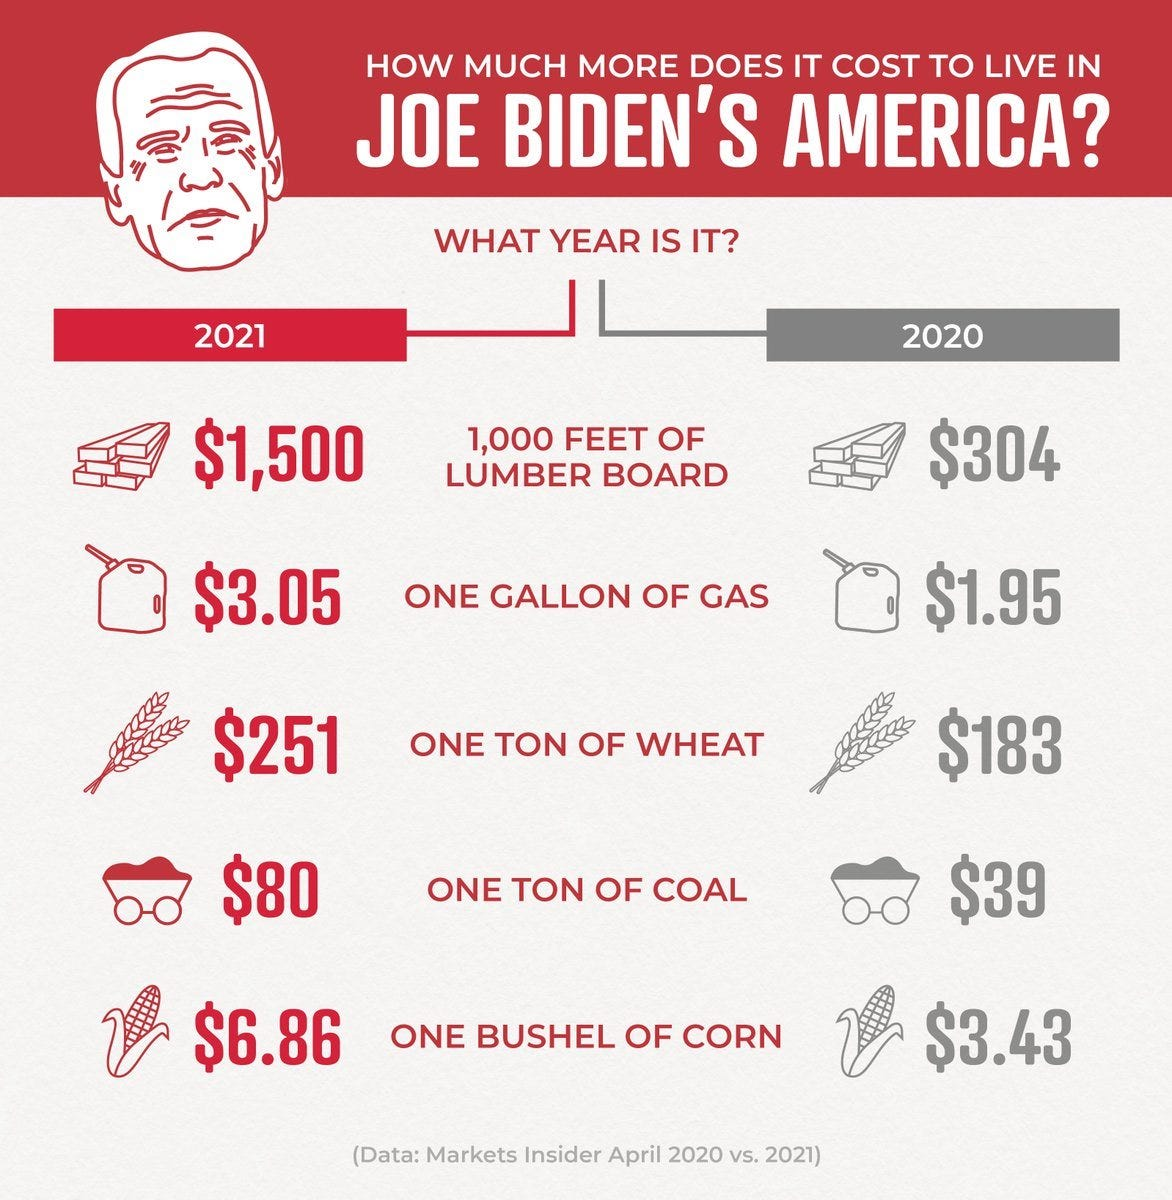 May be an image of 1 person and text that says 'HOW MUCH MORE DOES IT COST TO LIVE IN JOE BIDEN'S AMERICA? WHAT YEAR IS IT? 2021 2020 $1,500 1,000 FEET OF LUMBER BOARD $304 $3.05 ONE GALLON OF GAS $1.95 $251 ONE ΤΟΝ OF WHEAT $80 $183 ONE TON OF COAL 1 $6.86 $39 ONE BUSHEL OF CORN 1 $3.43 (Data: Markets Insider April 2020 vs. 2021)'